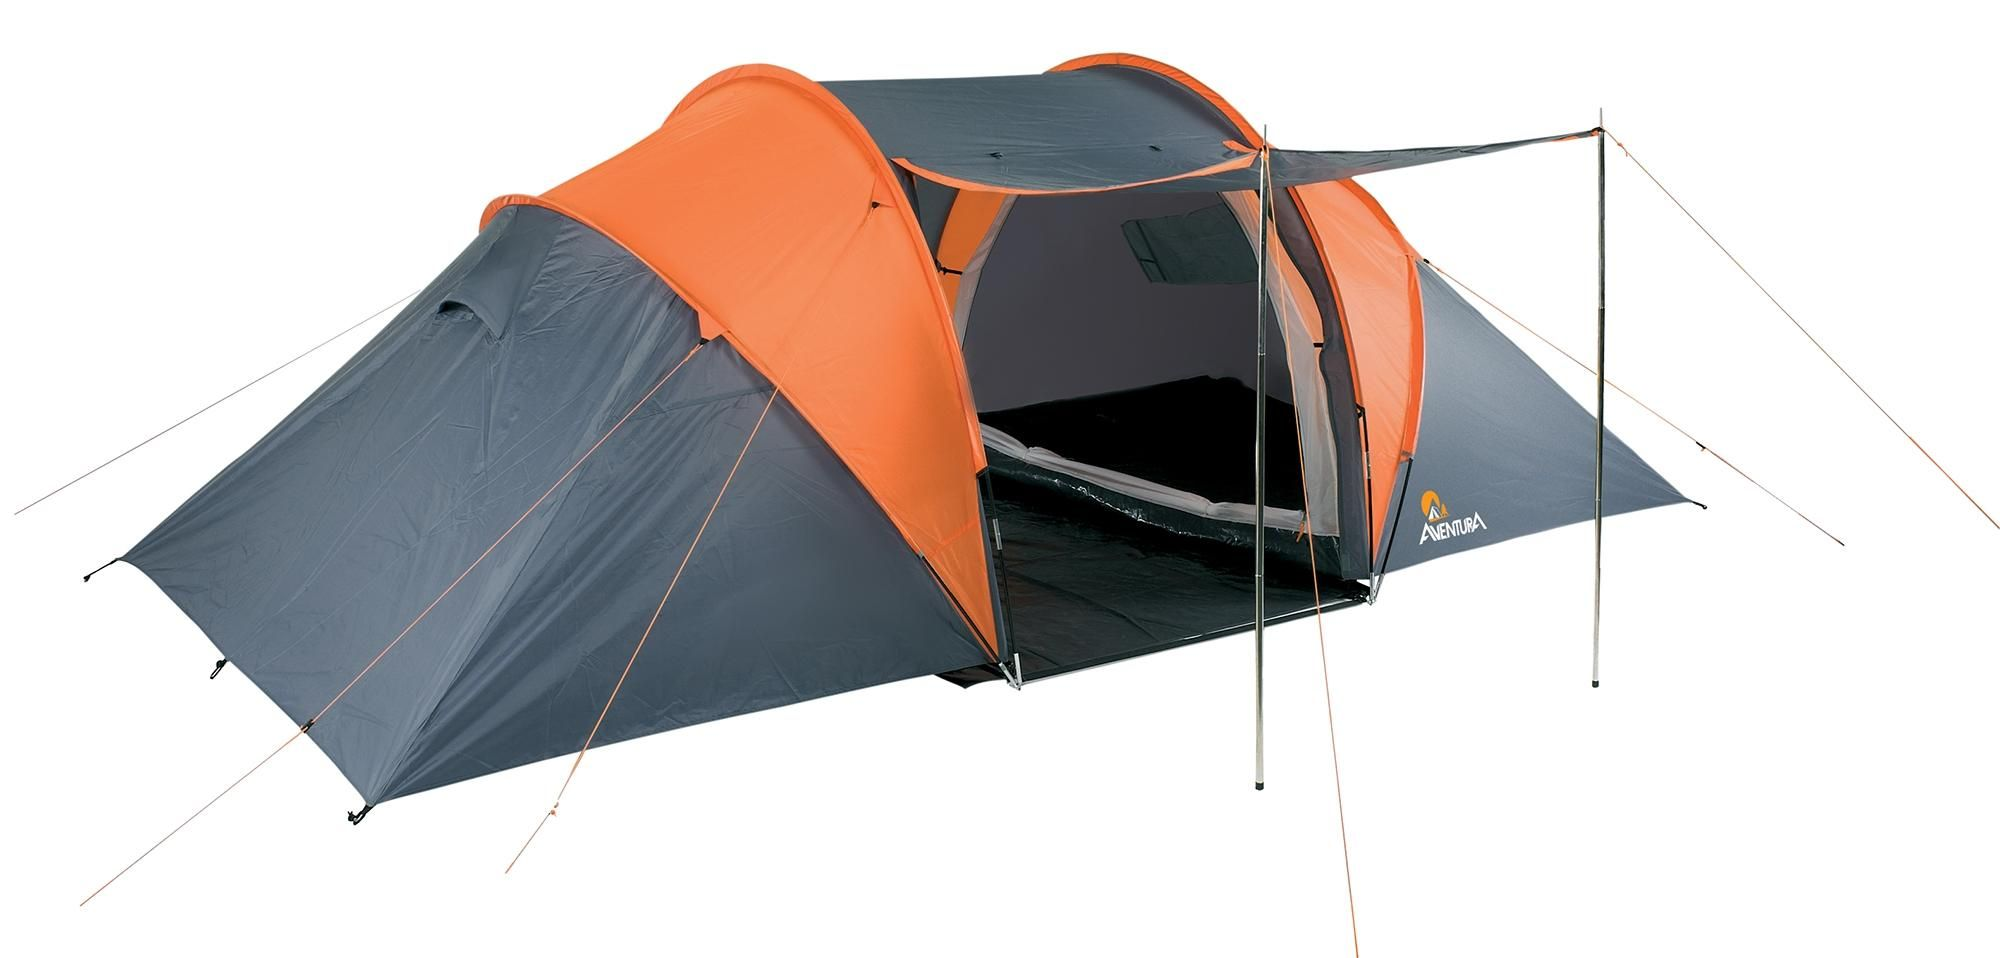 Aventura 4 Man Tunnel Tent is ideal for families or groups of friends going on a  sc 1 st  Pinterest & Aventura 4 Man Tunnel Tent is ideal for families or groups of ...